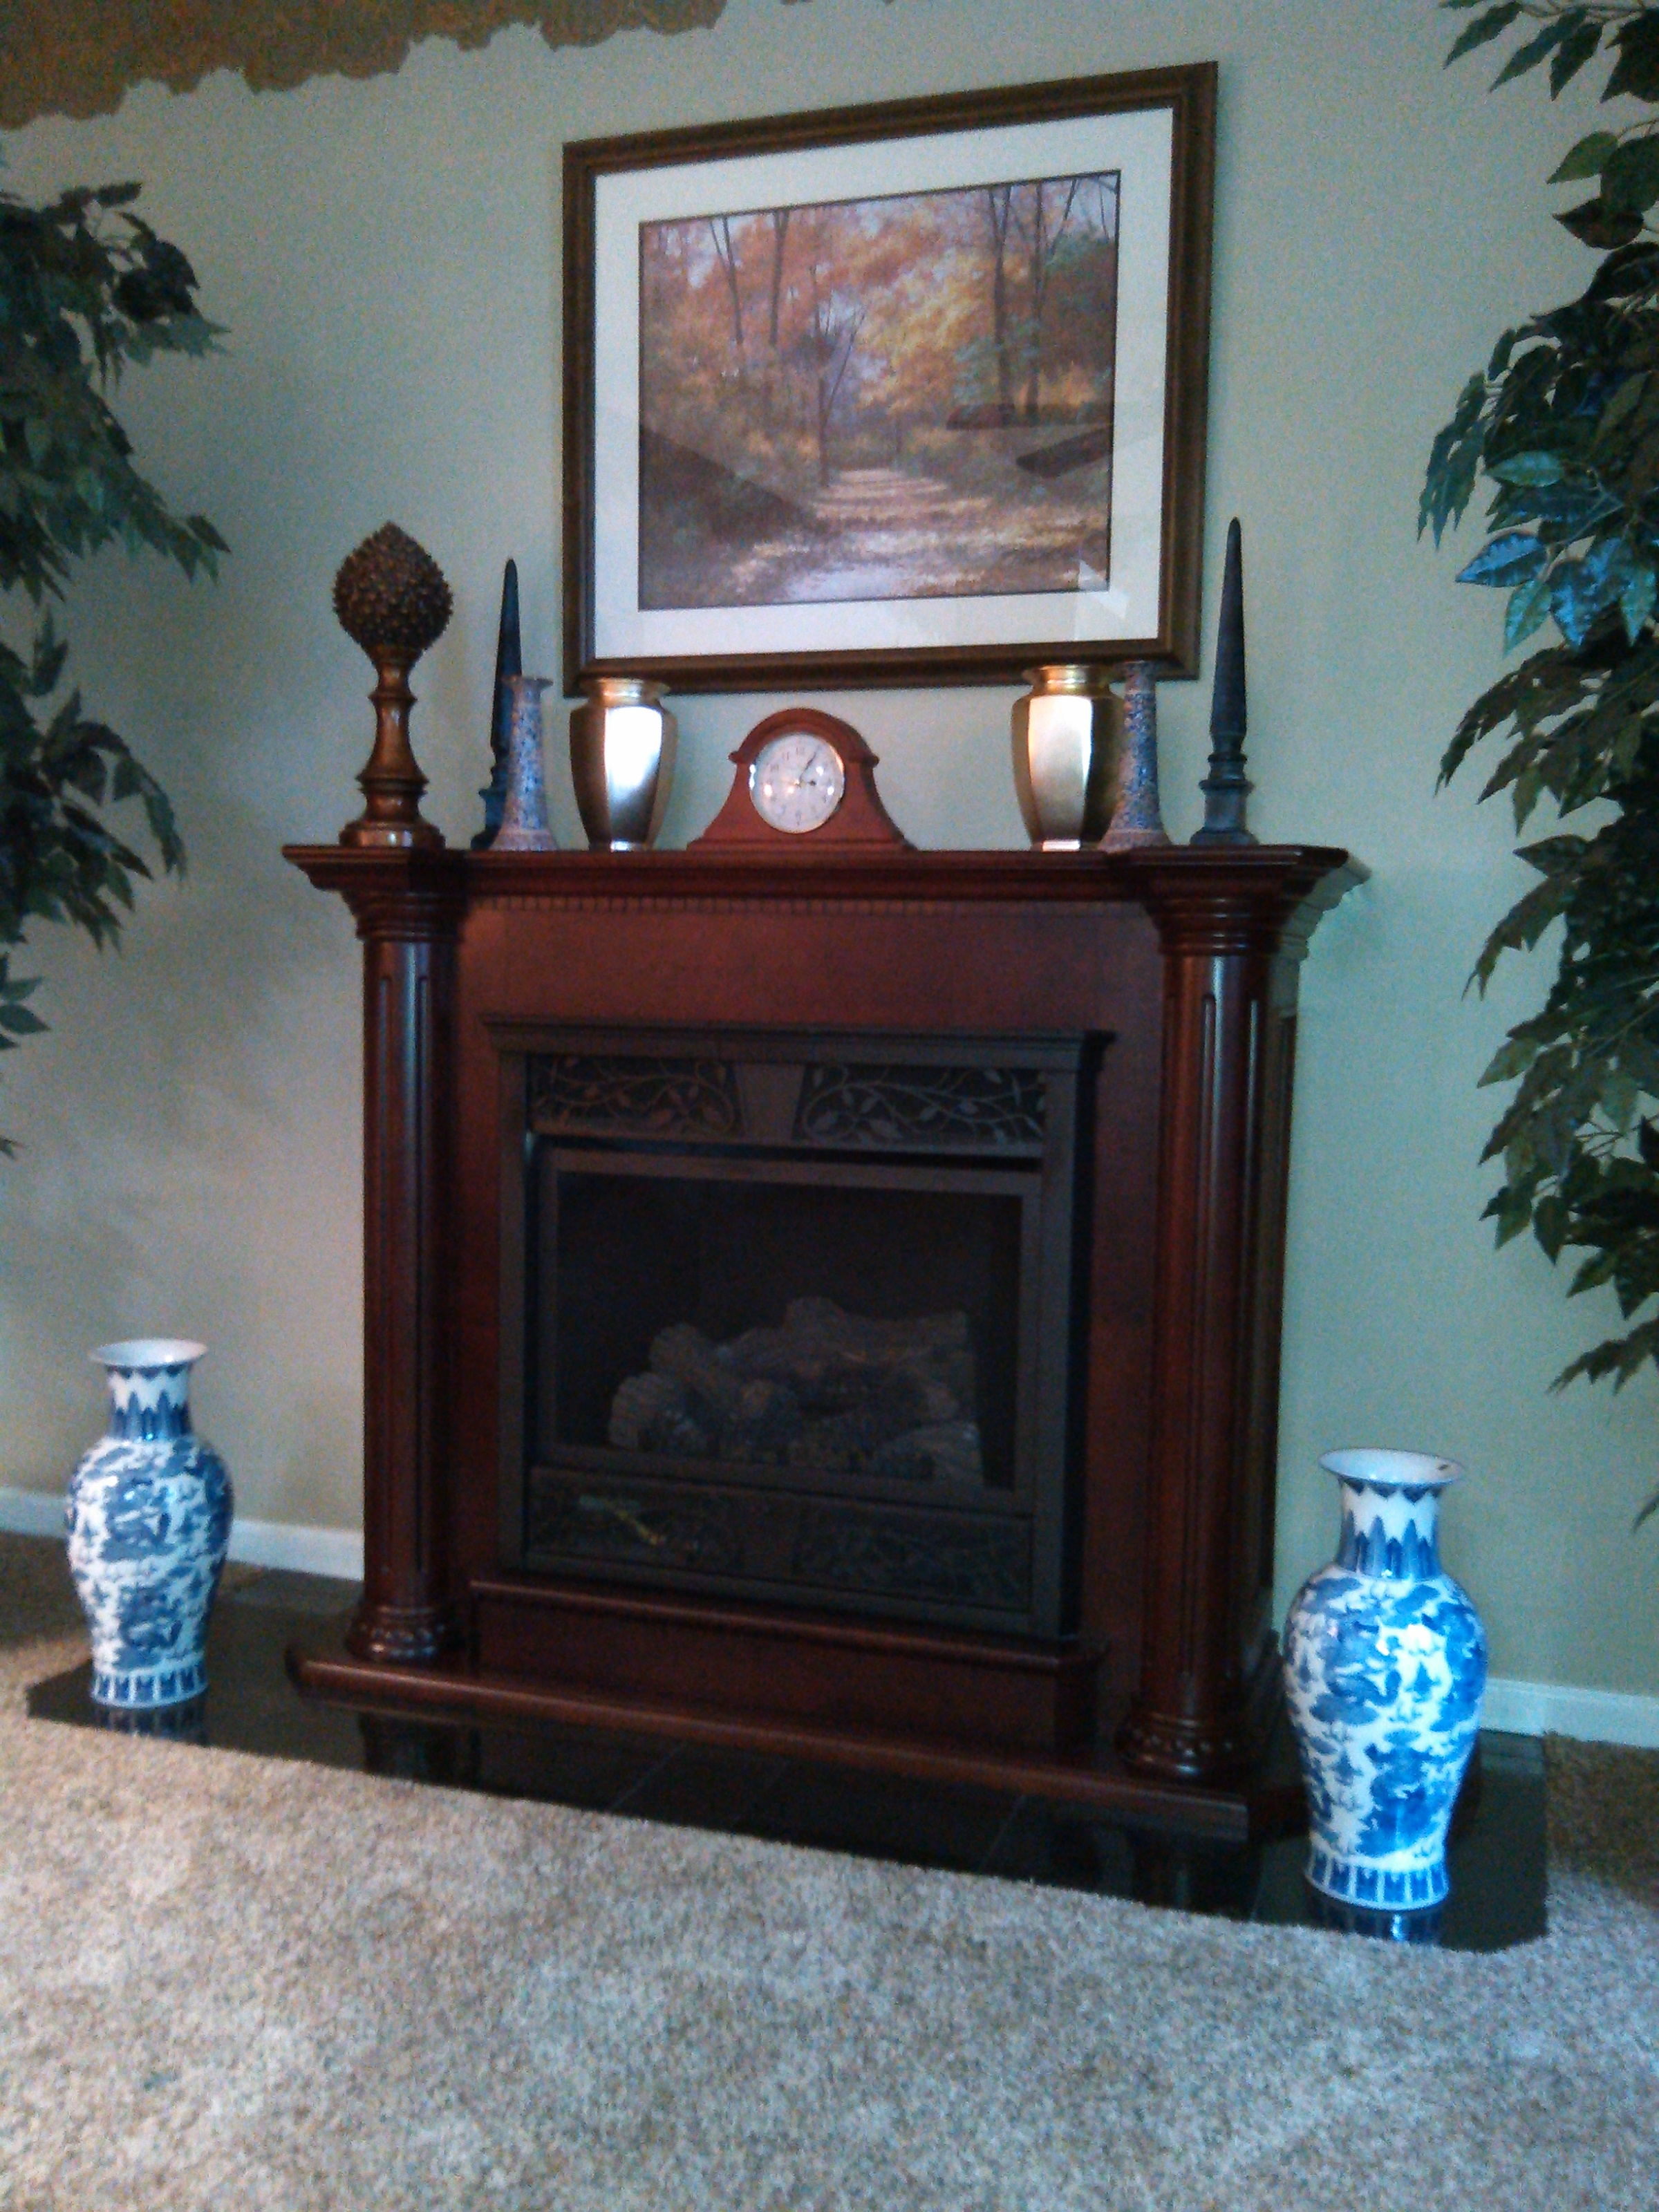 Prime First Choice Gas Services 14 E 5Th Ave Pine Hill Nj 08021 Home Interior And Landscaping Spoatsignezvosmurscom